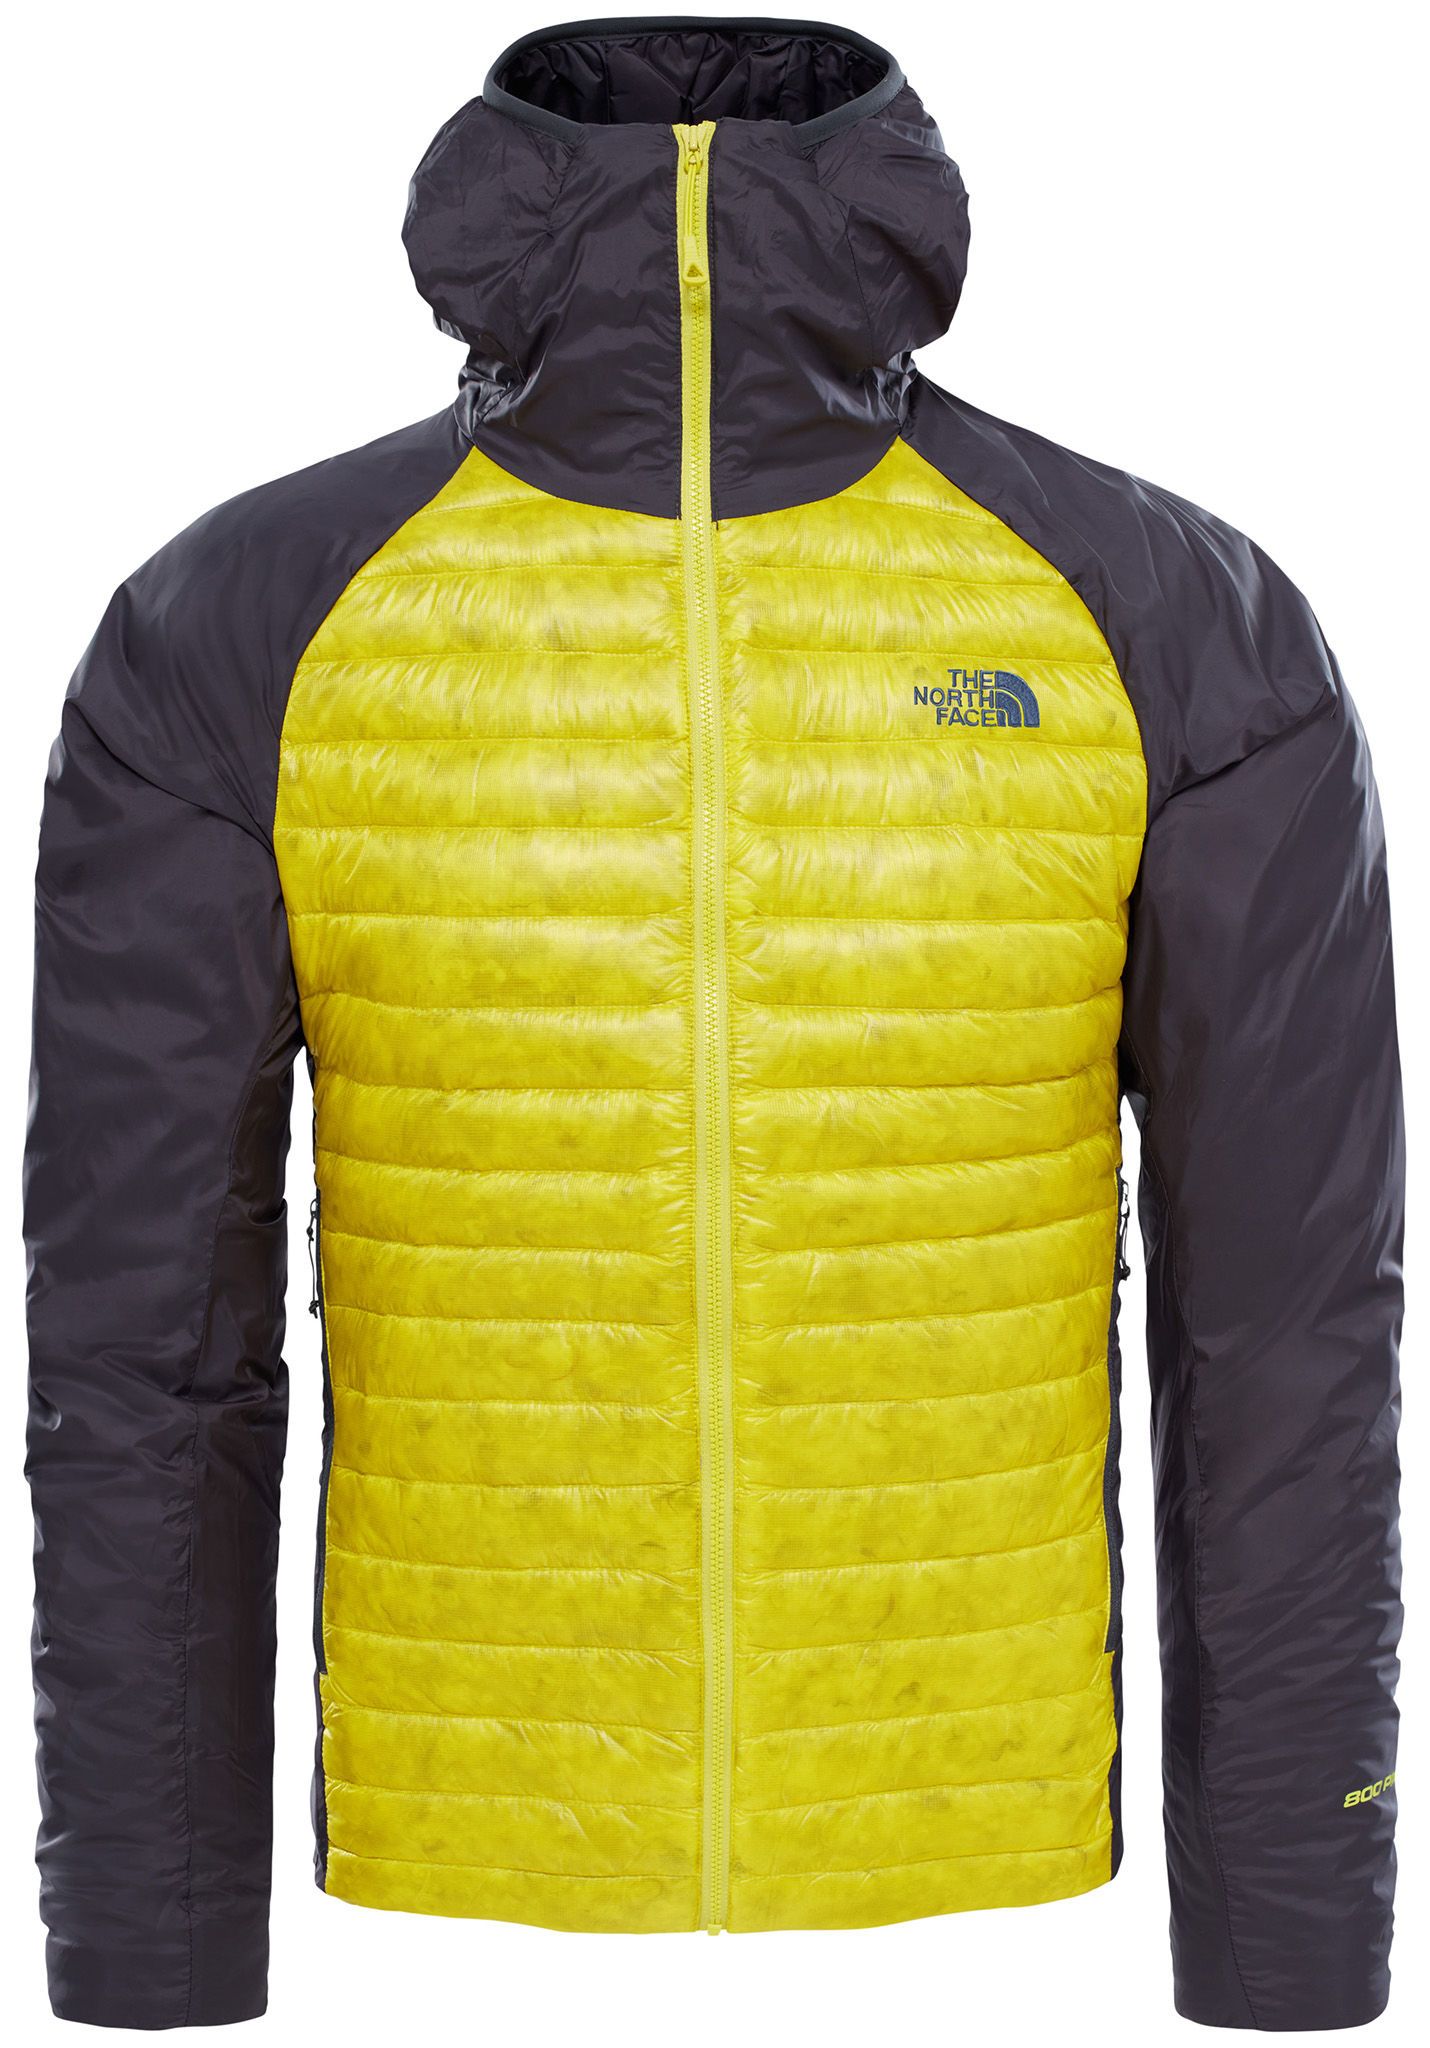 44f7589d6f ... THE NORTH FACE Verto Prima - Functional Jacket for Men - Yellow -  Planet Sports ...